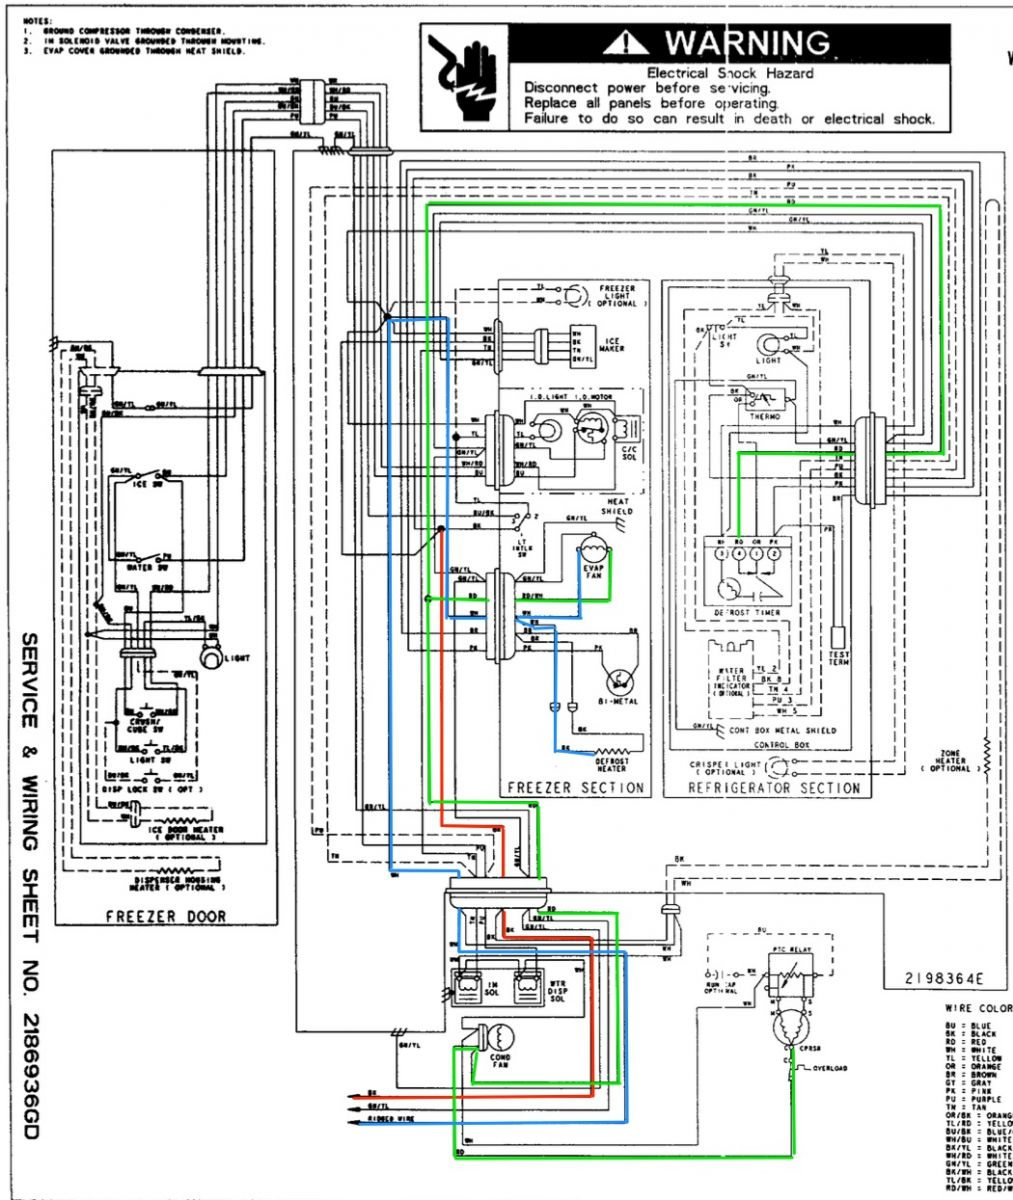 whelen pcc s9 wiring diagram whelen switch box wiring